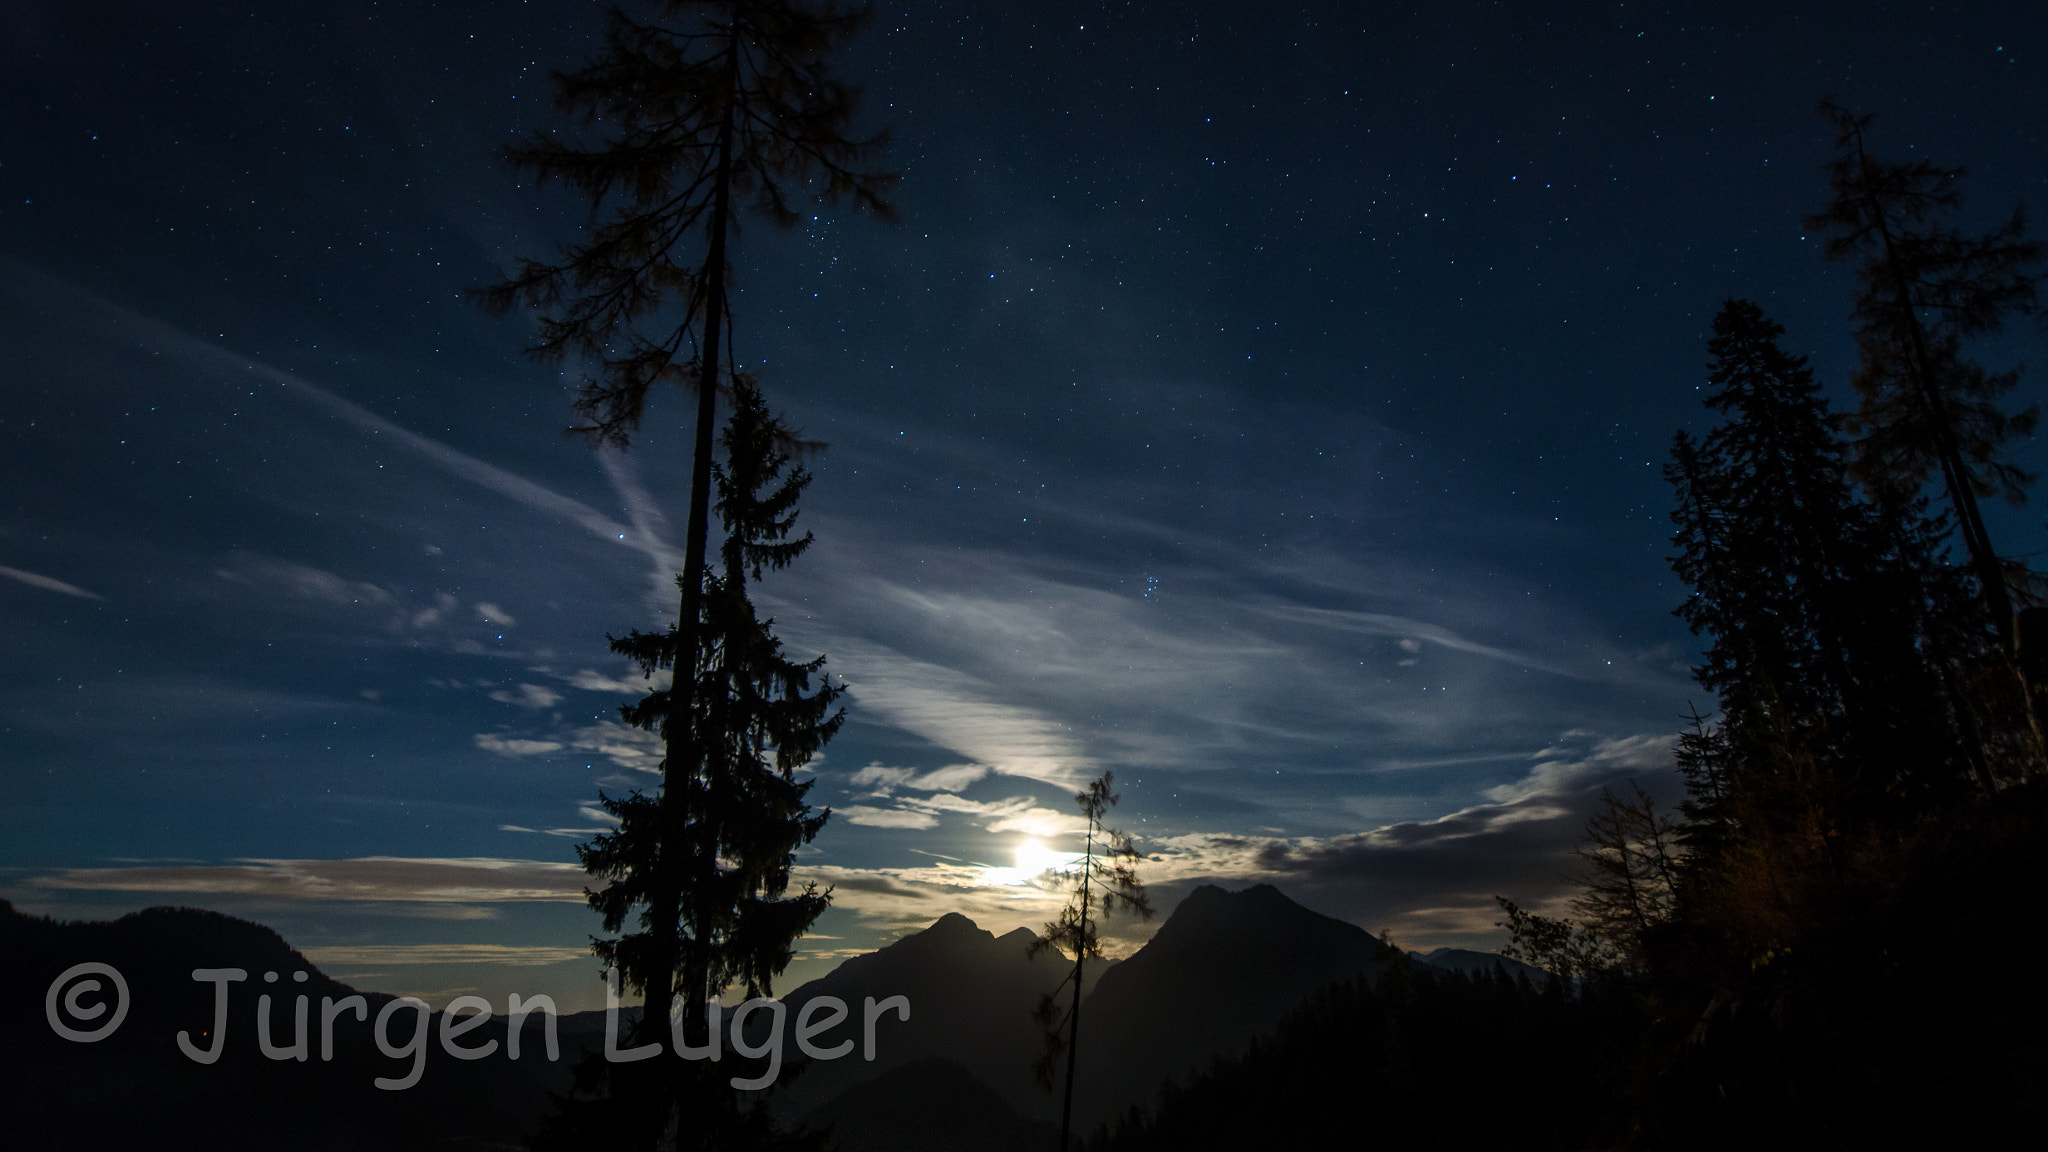 Photograph Night by Jürgen Luger on 500px